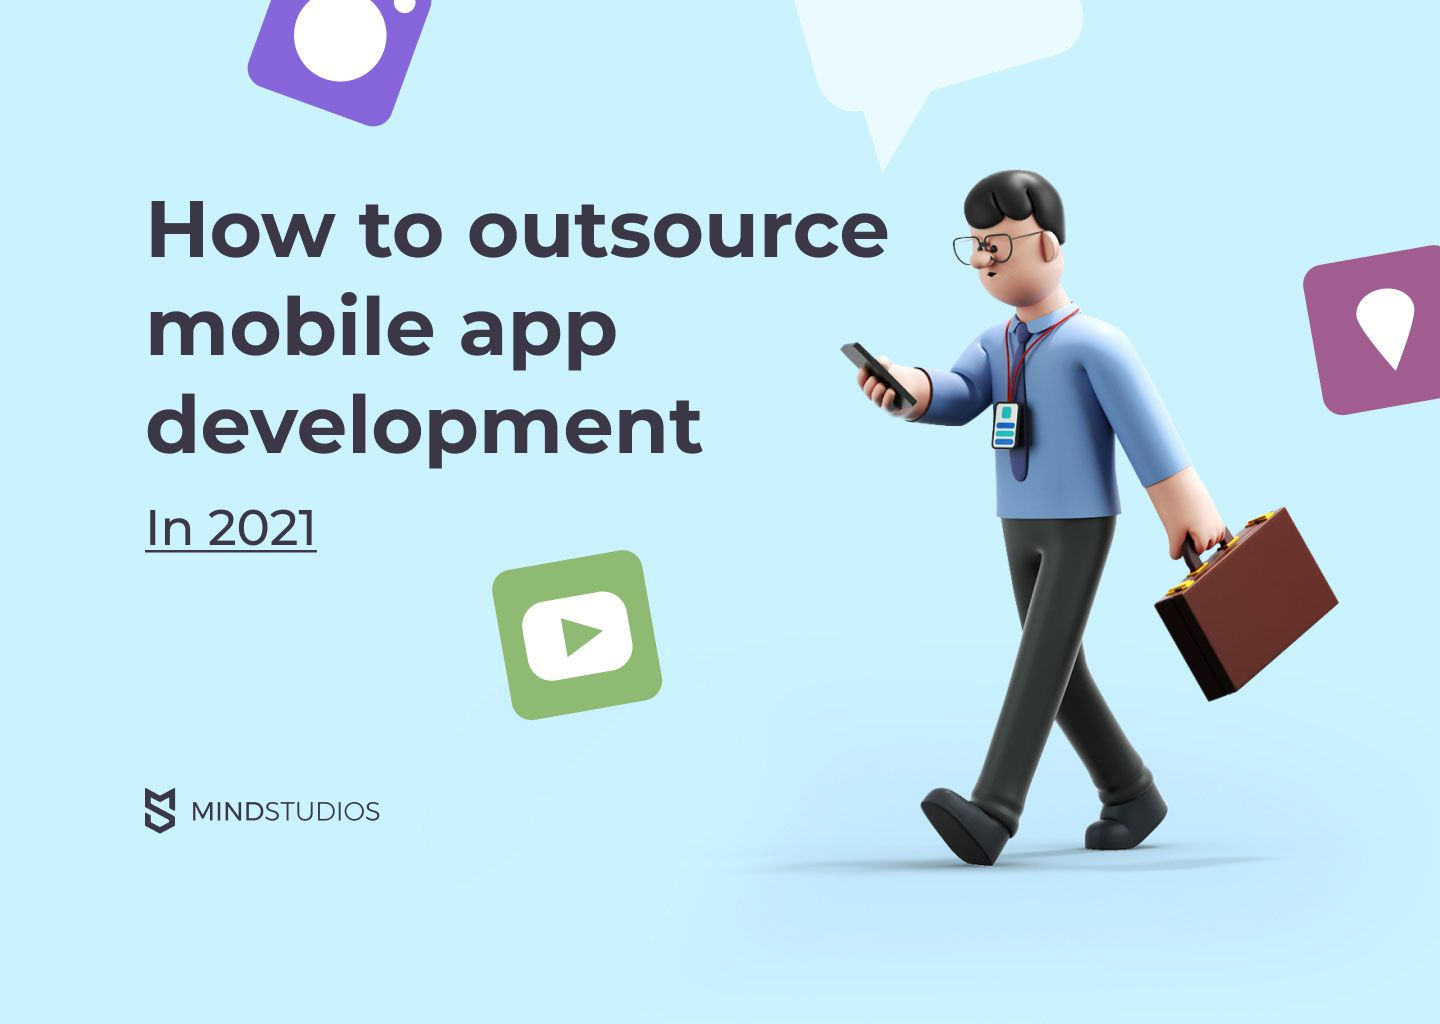 How to Outsource Mobile App Development in 2021